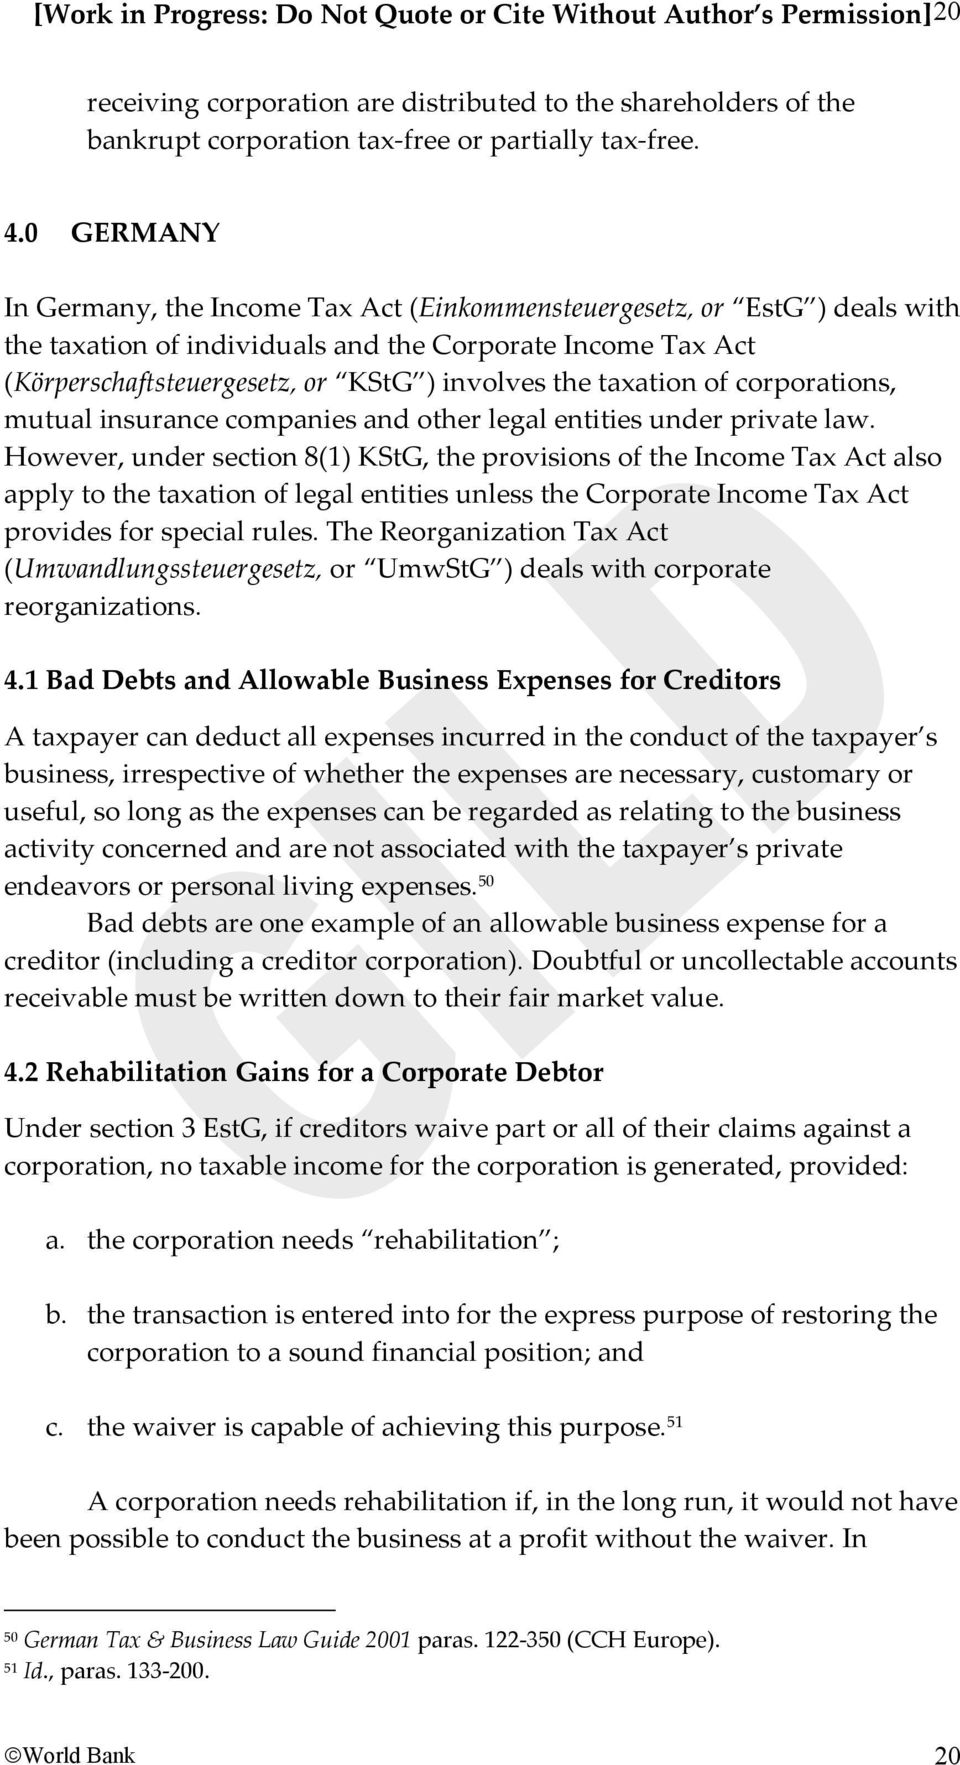 taxation of corporations, mutual insurance companies and other legal entities under private law.